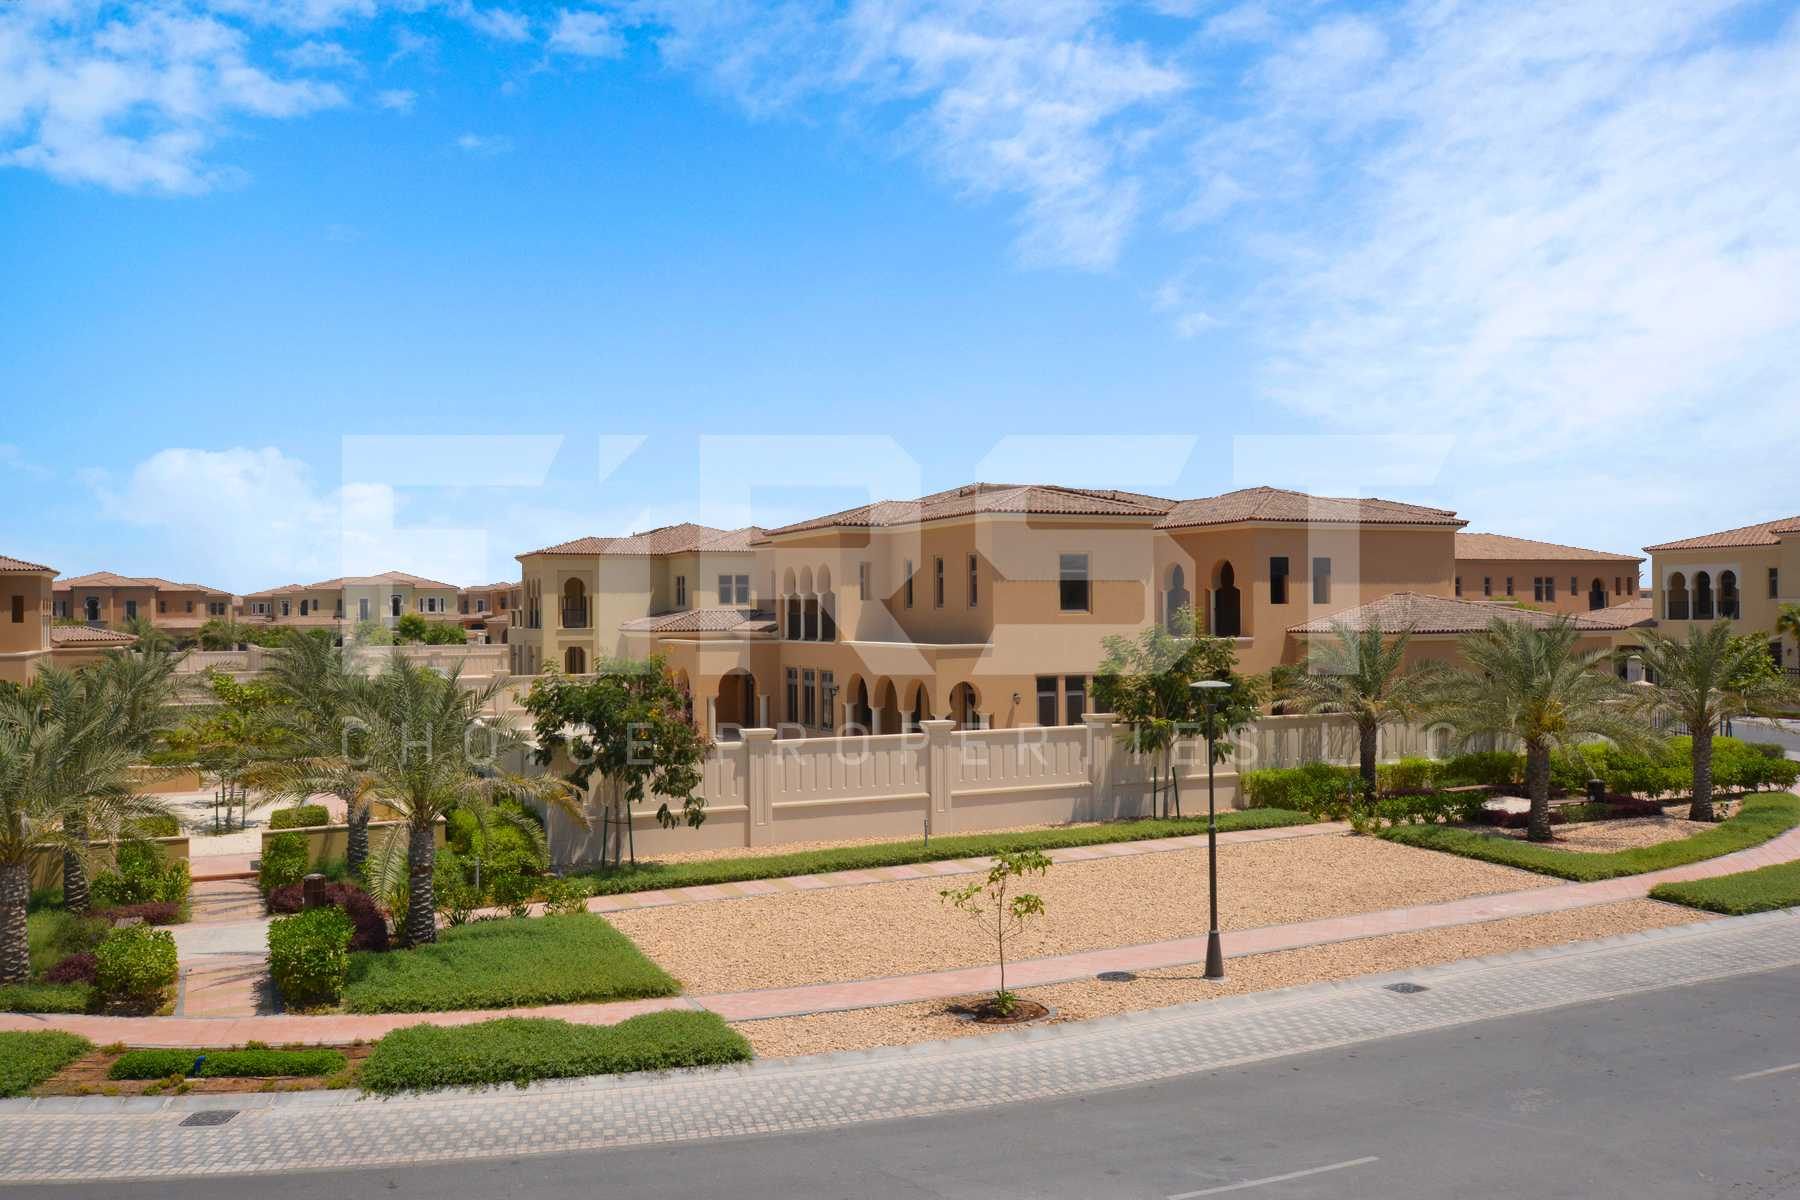 External Photo of Premium 5 Bedroom Villa in Saadiyat Beach Villas Saadiyat Island Abu Dhabi UAE (1).jpg